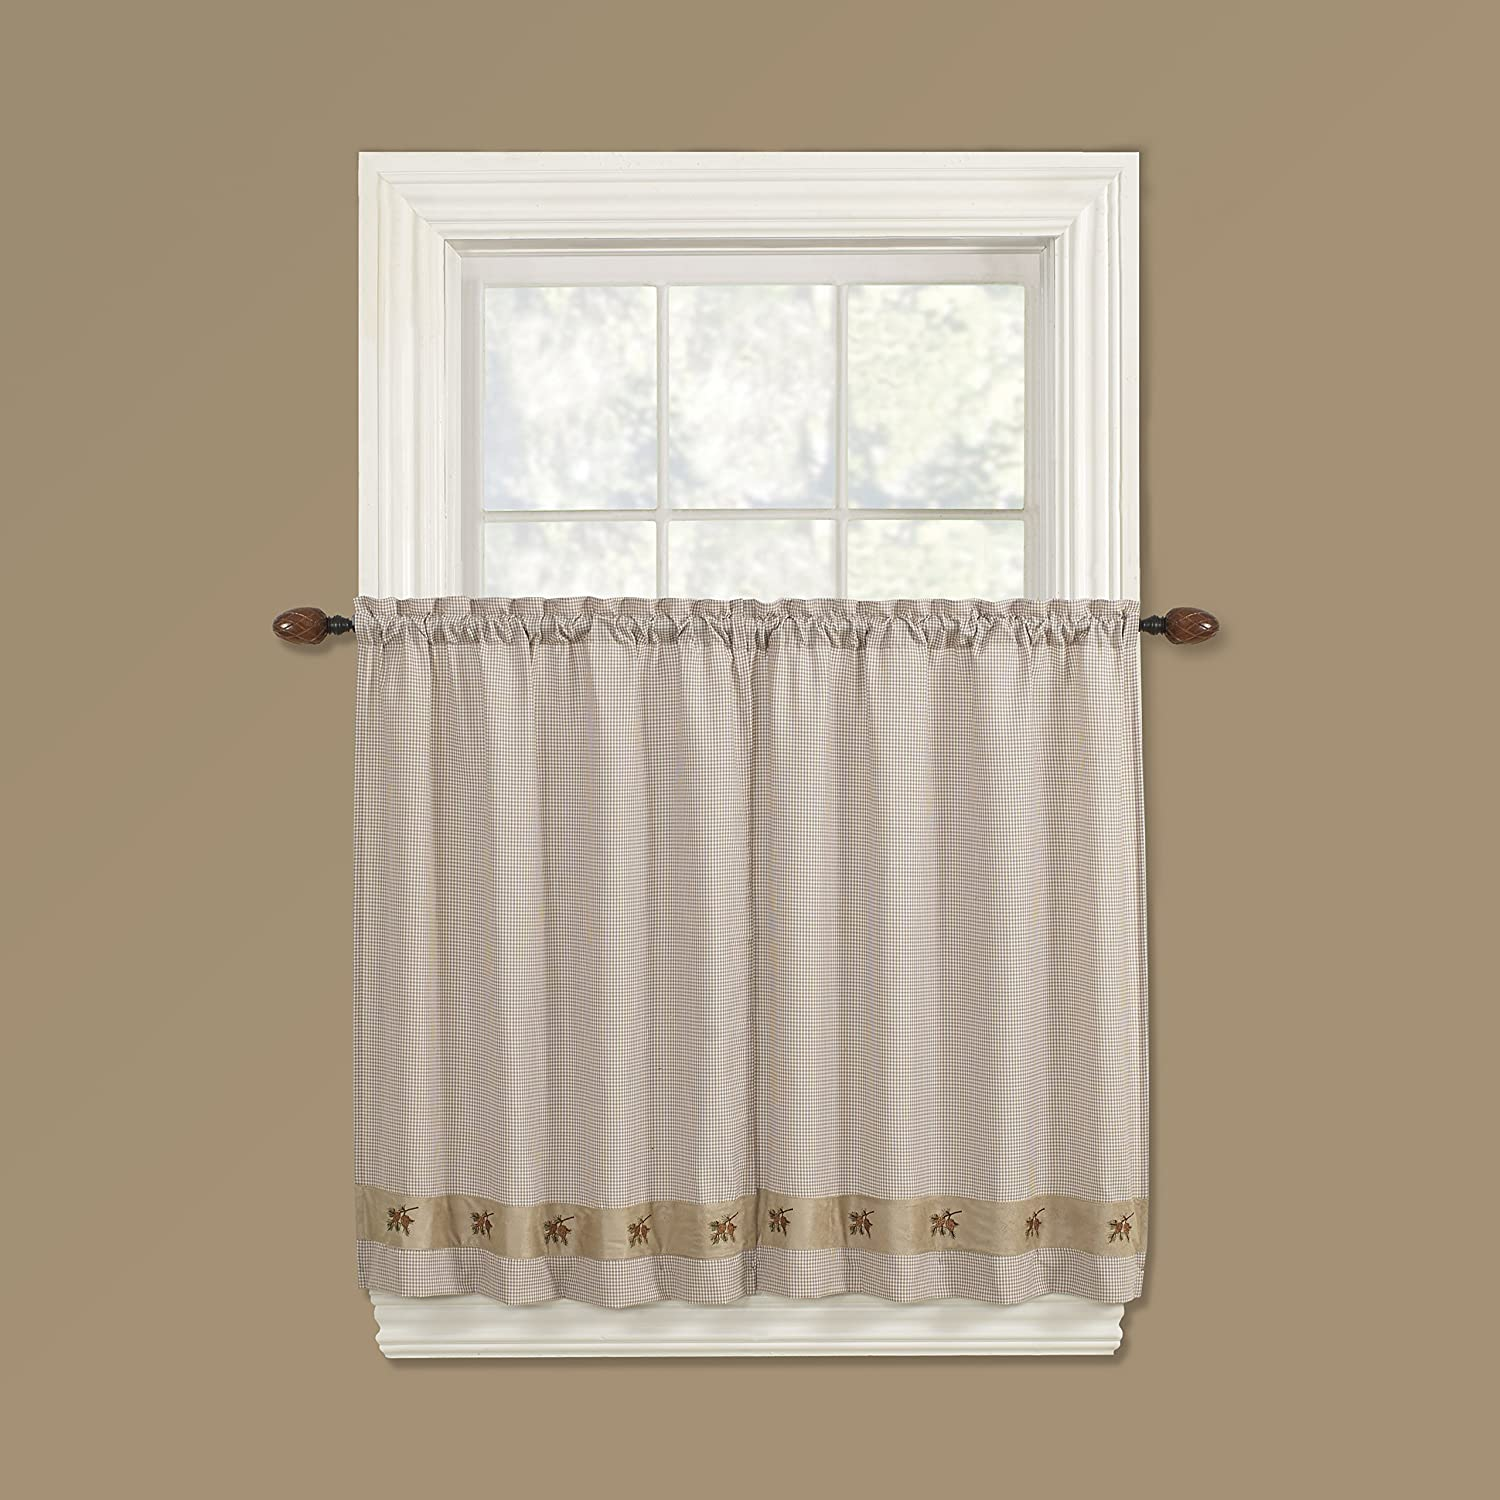 Embroidered Mini-Plaid Valance - Perfect Plaid Curtain for Kitchen, Bathroom, and Bedroom - Small Check Plaid with Acorn Embroidery (60 x 12 Valance, Green) GPD FBA_0956060012GRN